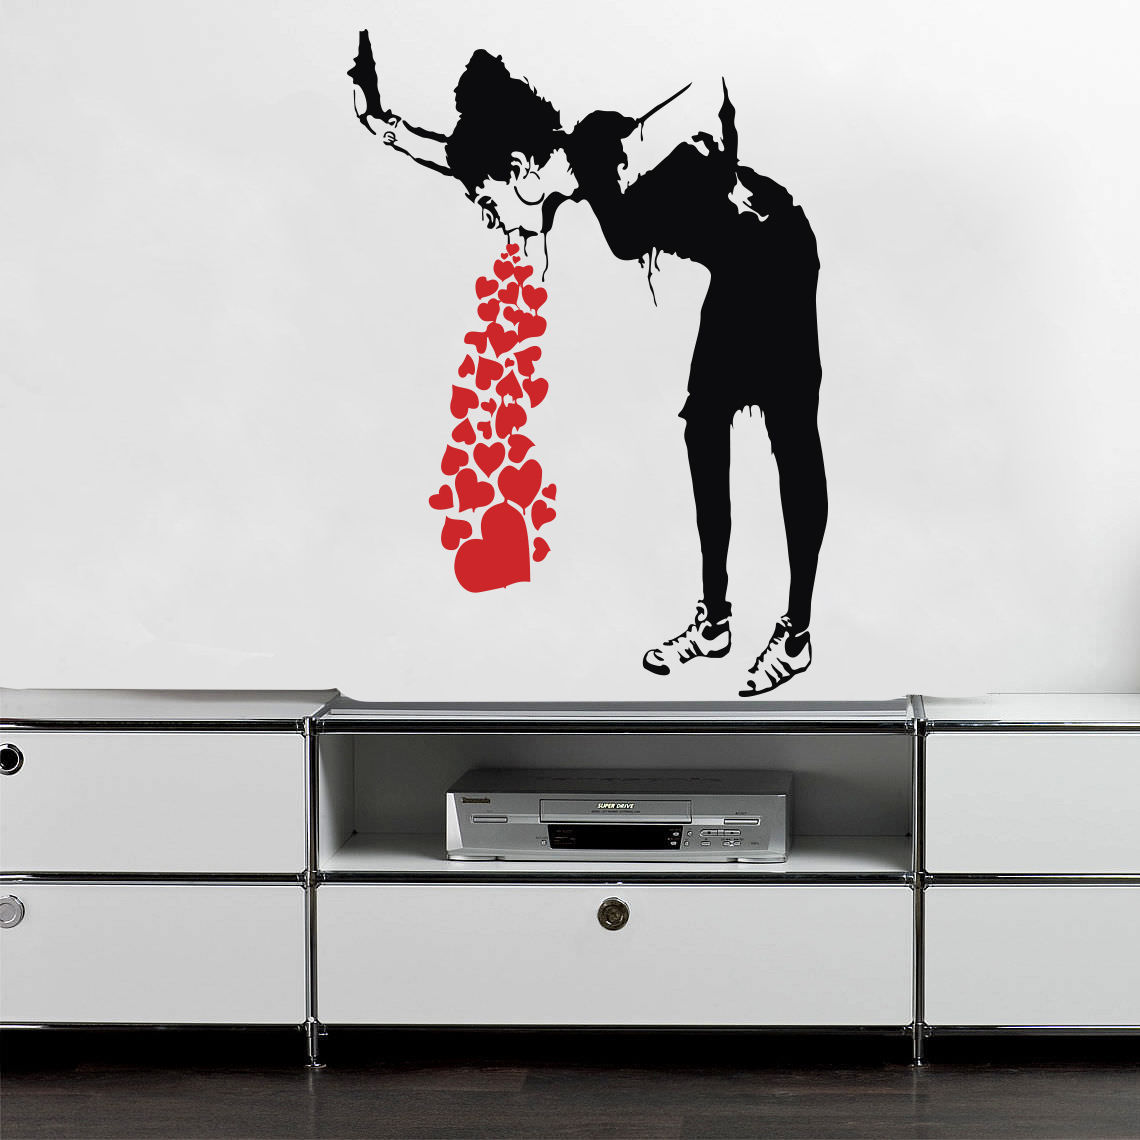 G125 Banksy Barfy Girl Wall Decal pelekat vinil street art graffiti bedroom decor Creative sticker dekorasi bilik tidur kreatif